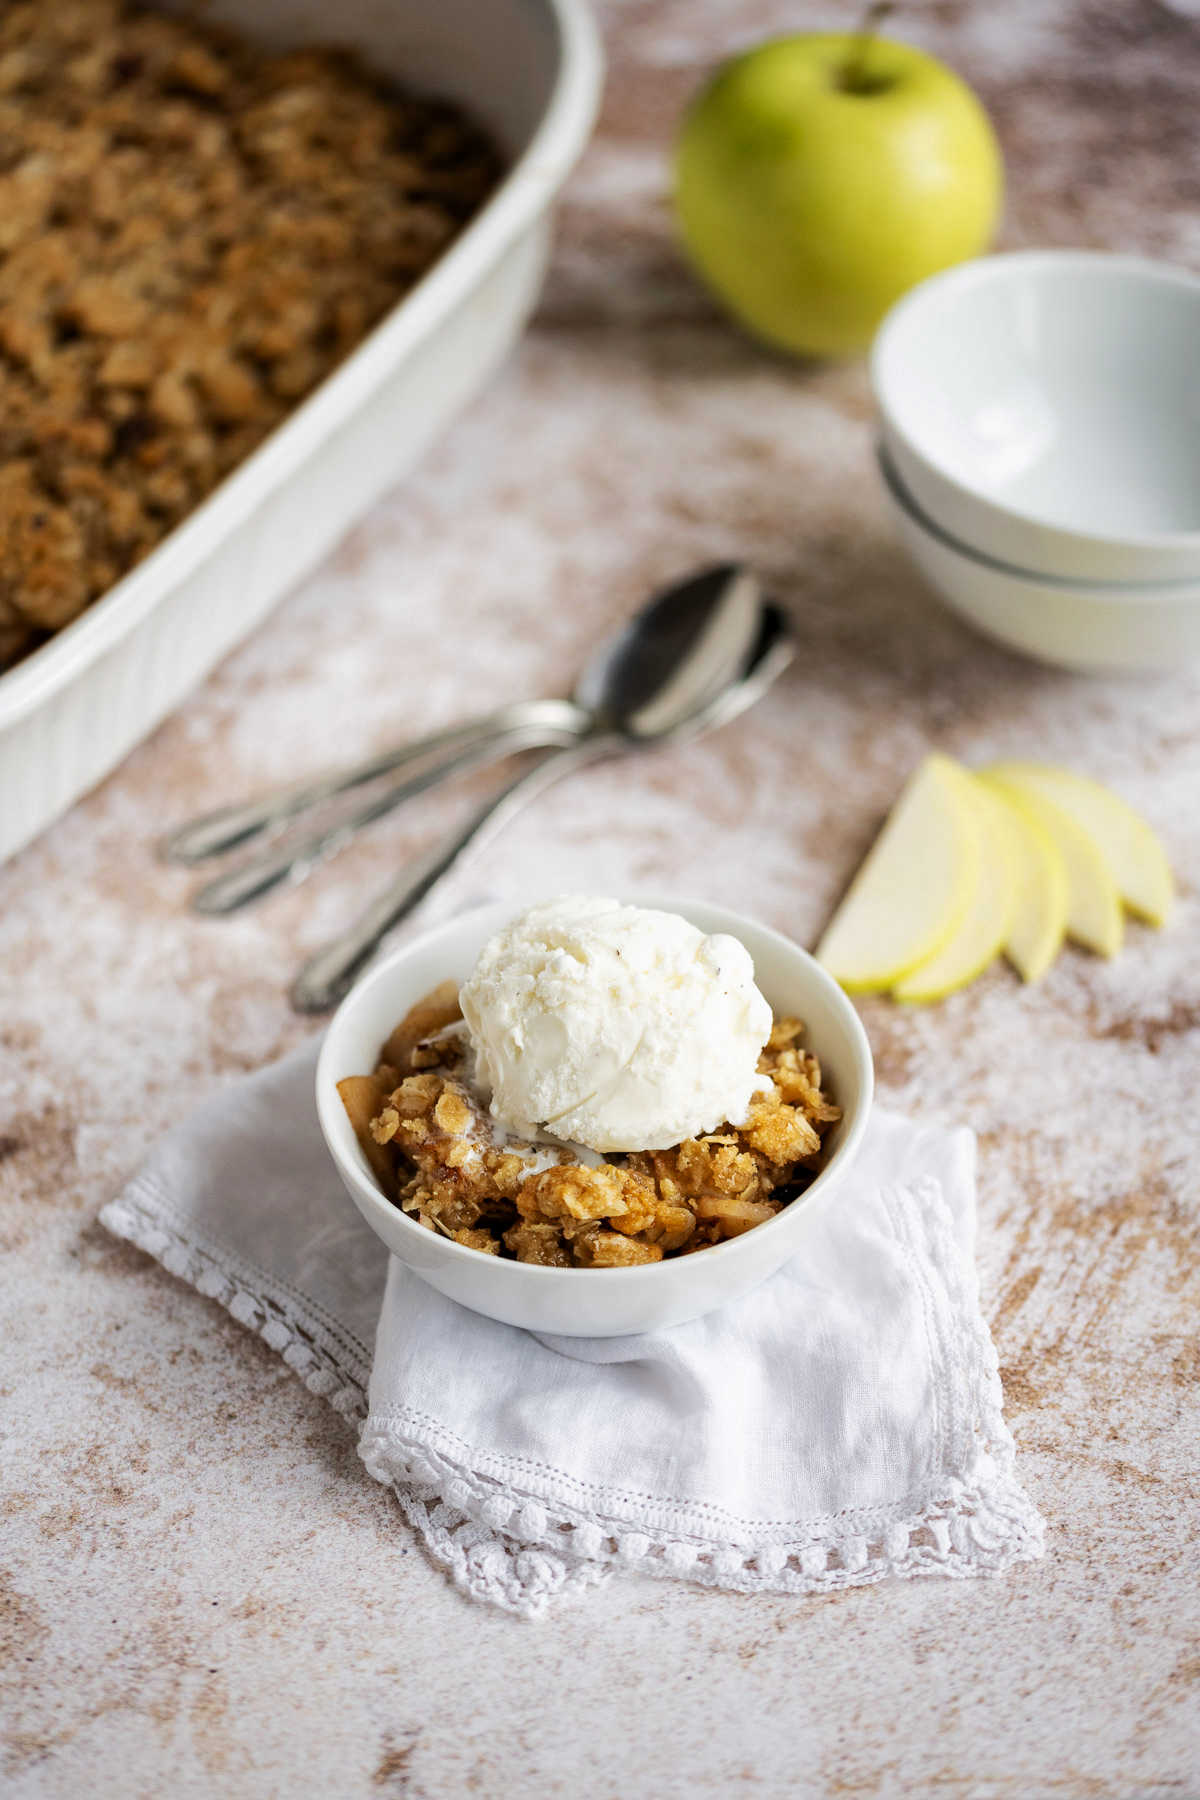 apple crisp in a white bowl with a scoop of vanilla ice cream on top sitting on a counter with apple and baking dish in the background.